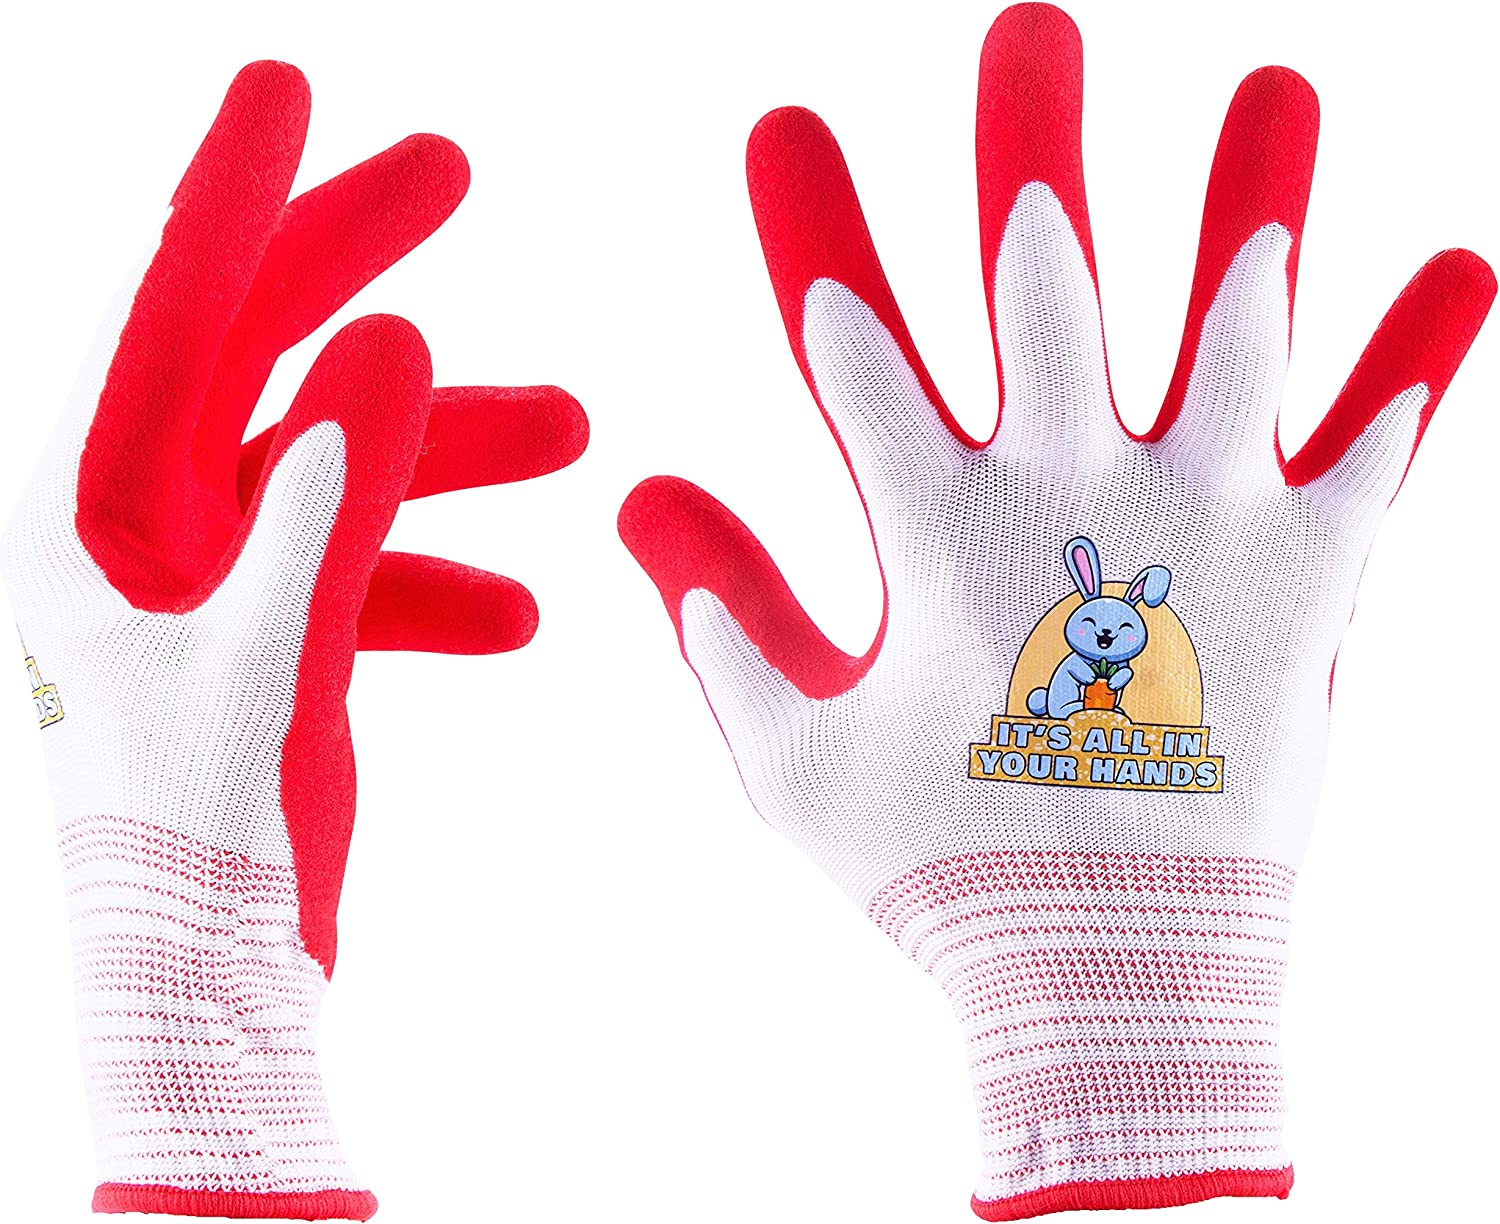 Gardening Gloves for Women - Set of 3 Pairs Size Medium - Breathable Rubber Coated Cotton Blend High-Performance Garden Gloves - Non-Slip Working Gloves - Red and White Bunny Design